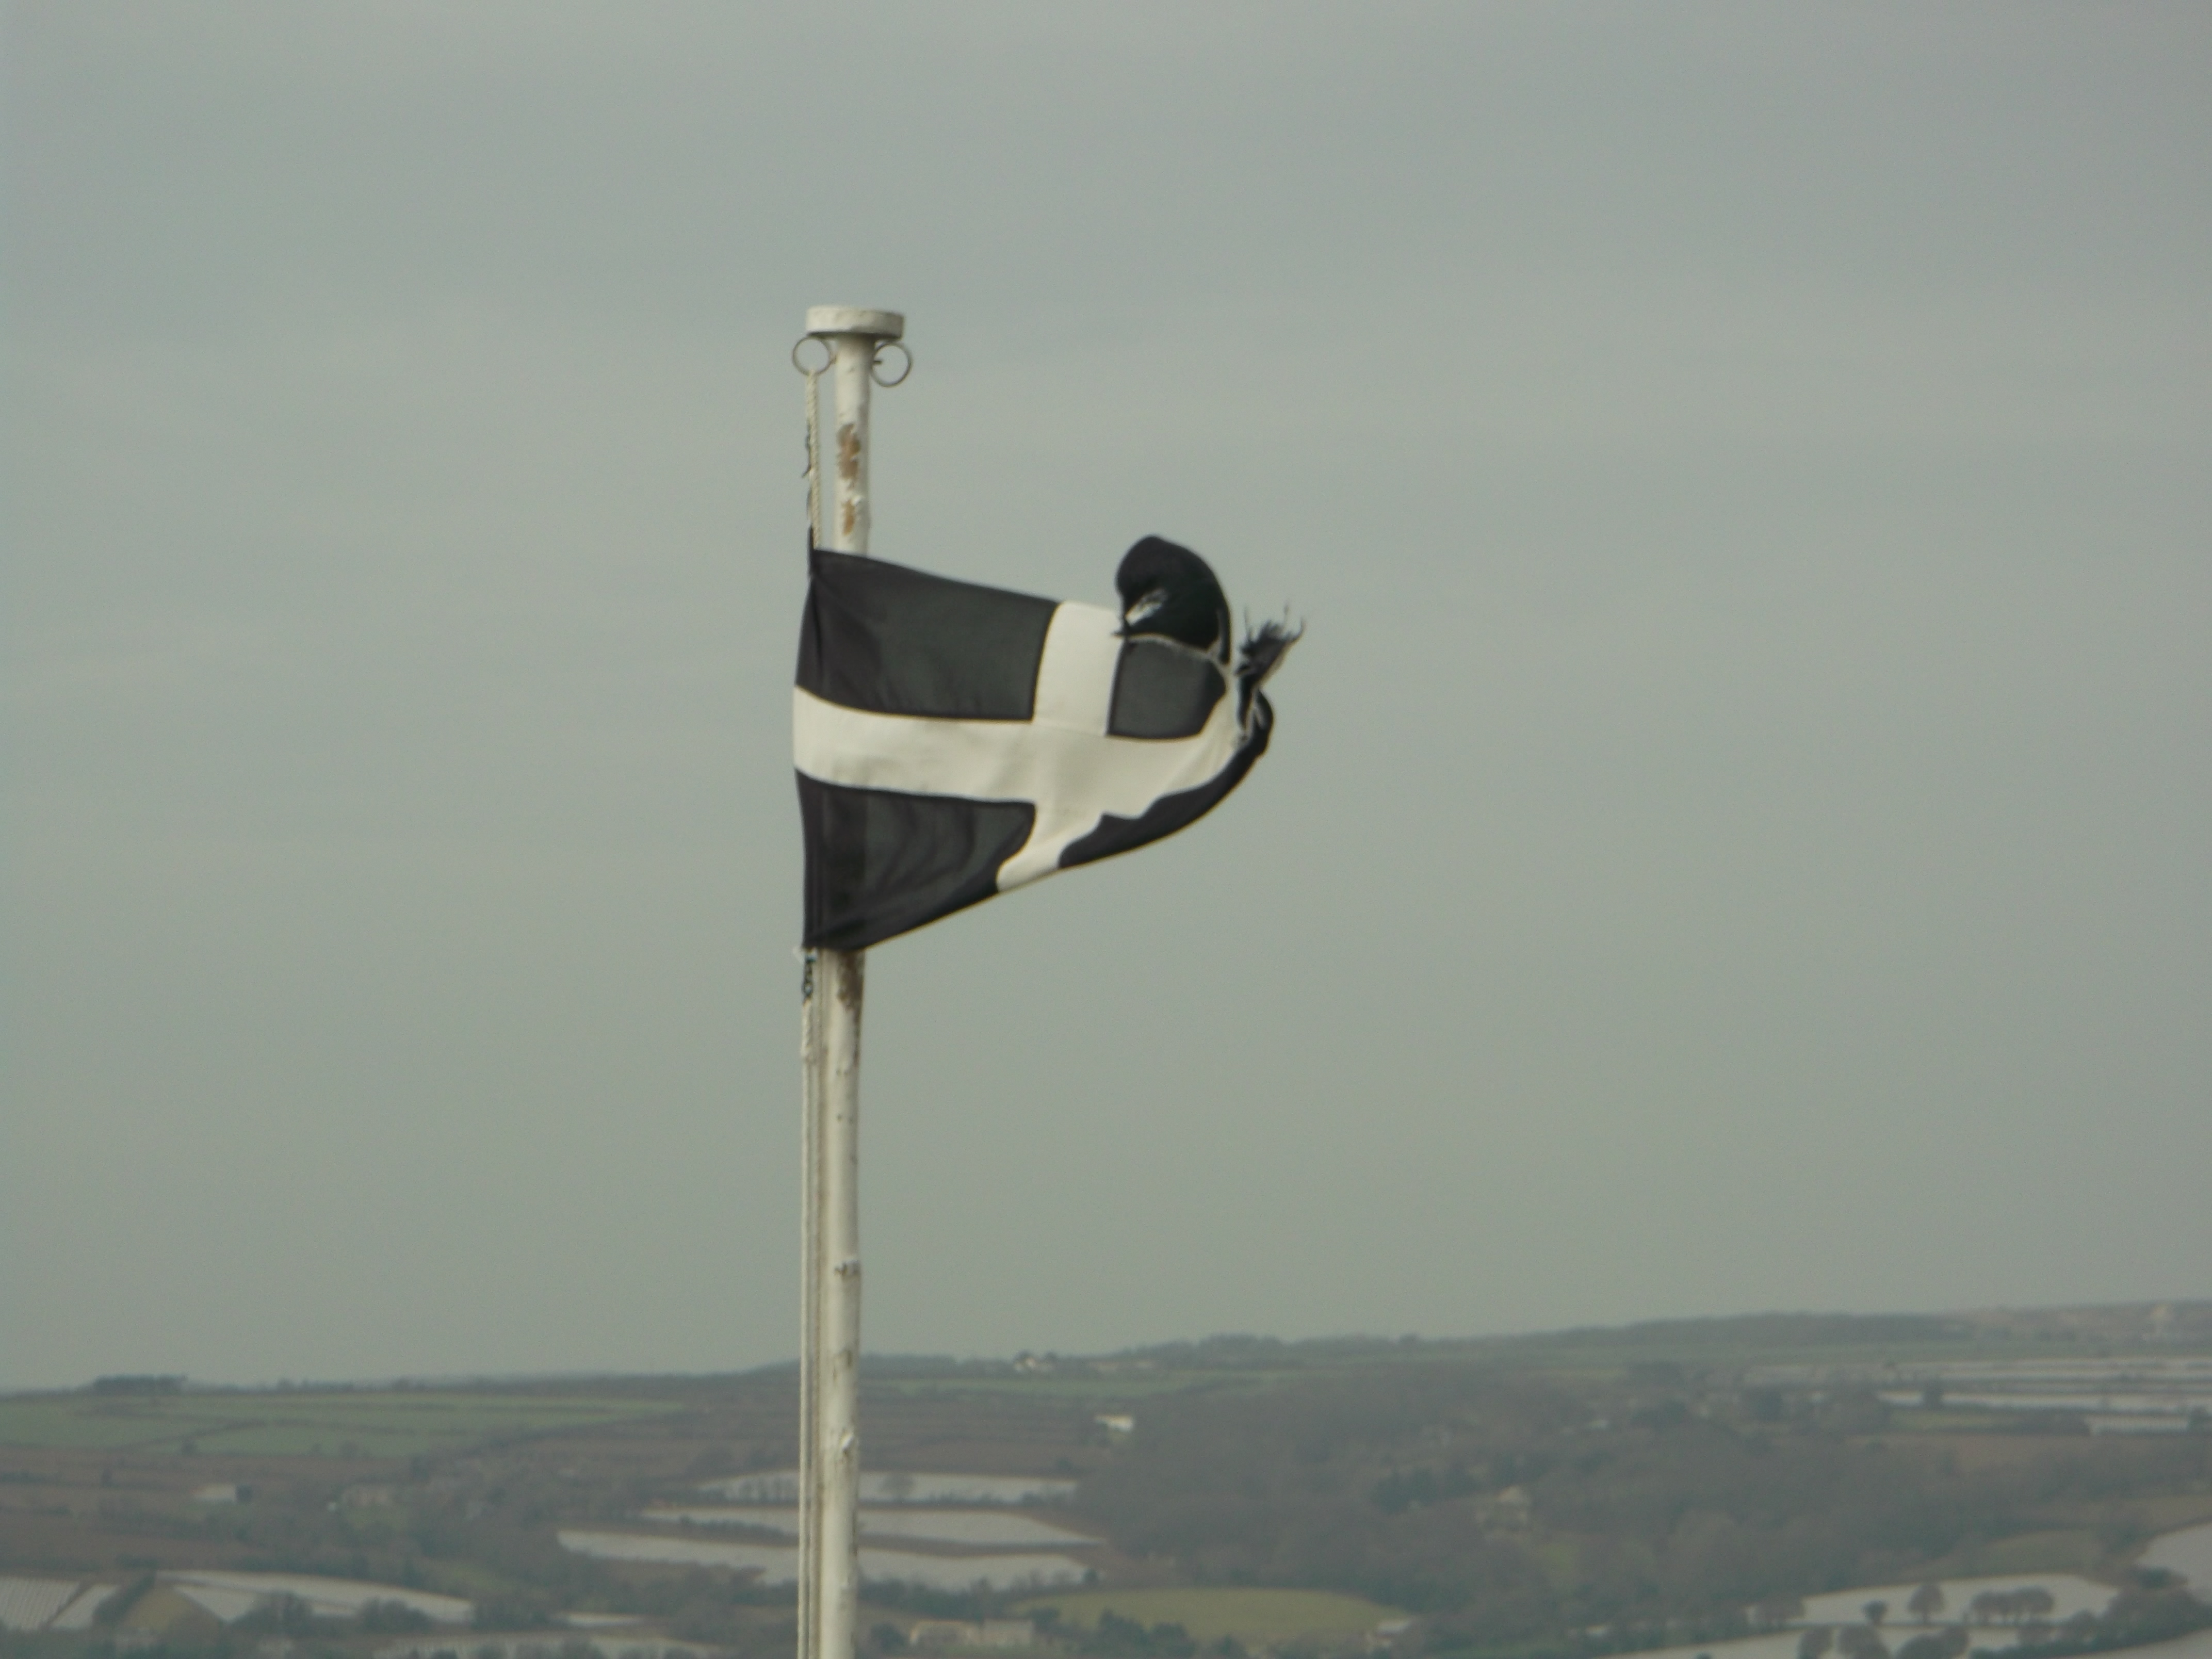 St Piran's Day - St Michael's Mount